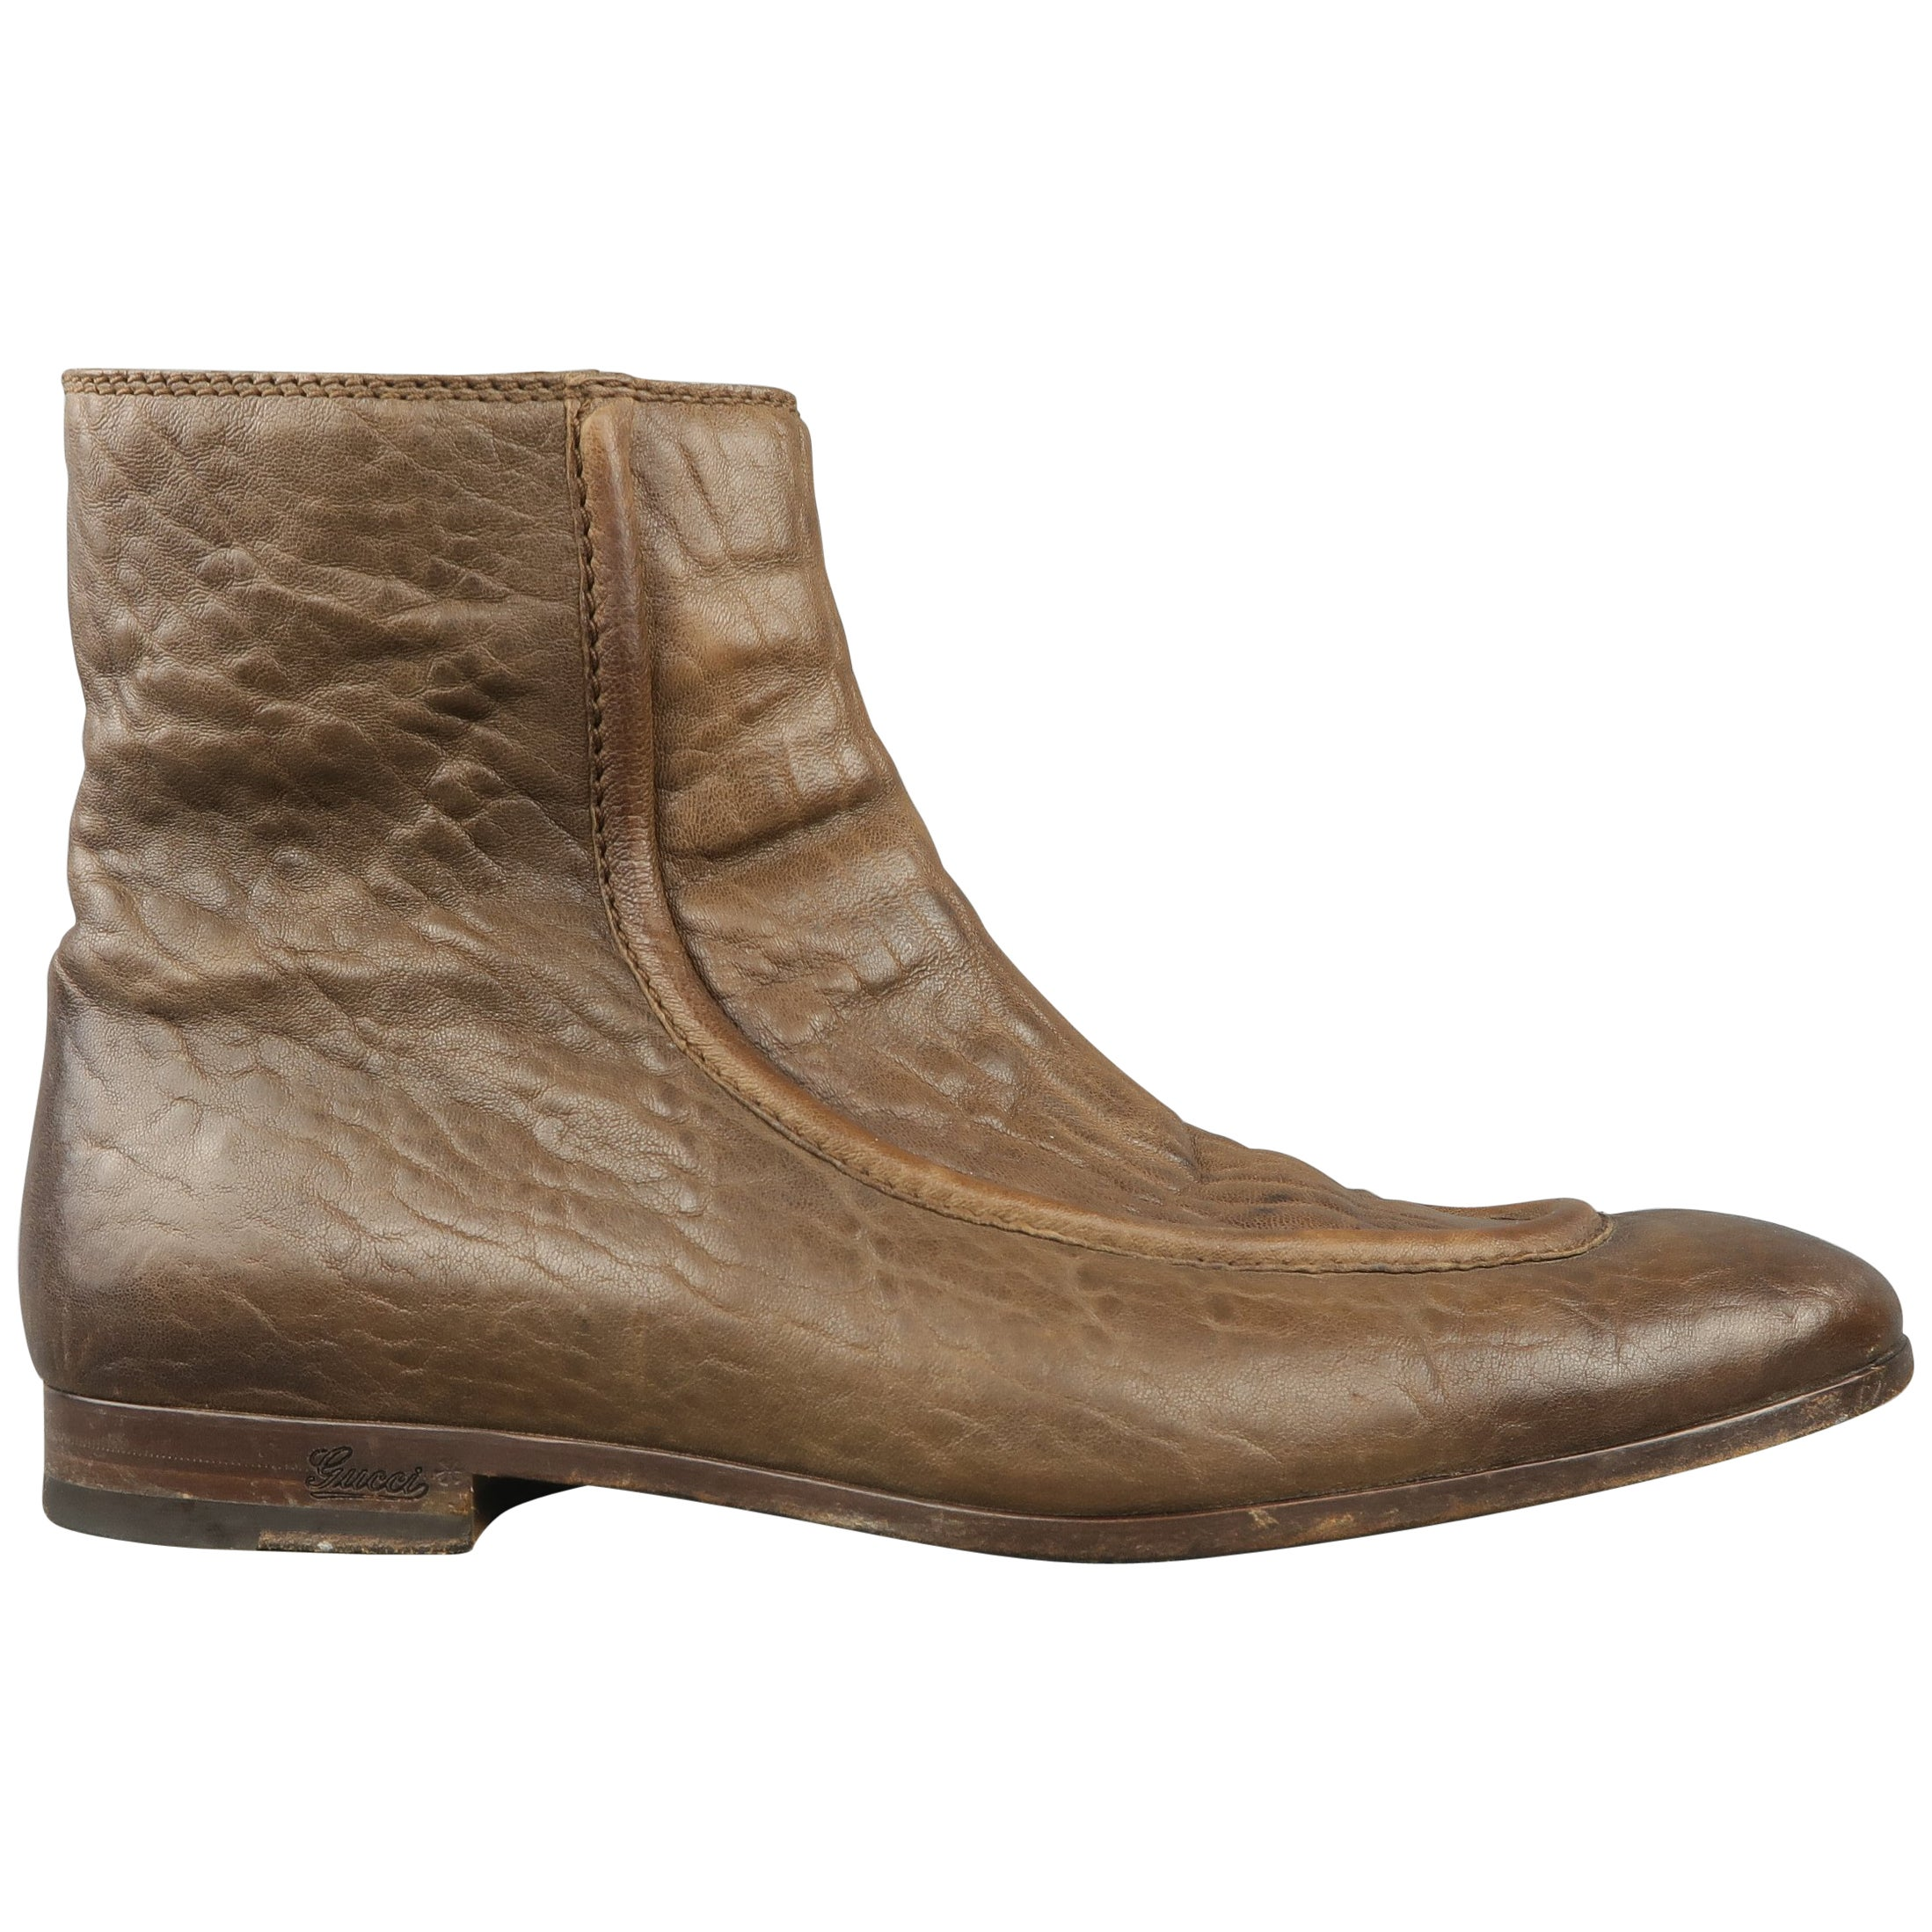 ee5a90b145f Men s GUCCI Boots Size 12 Taupe Textured Leather Apron Toe Ankle Boots    Shoes at 1stdibs